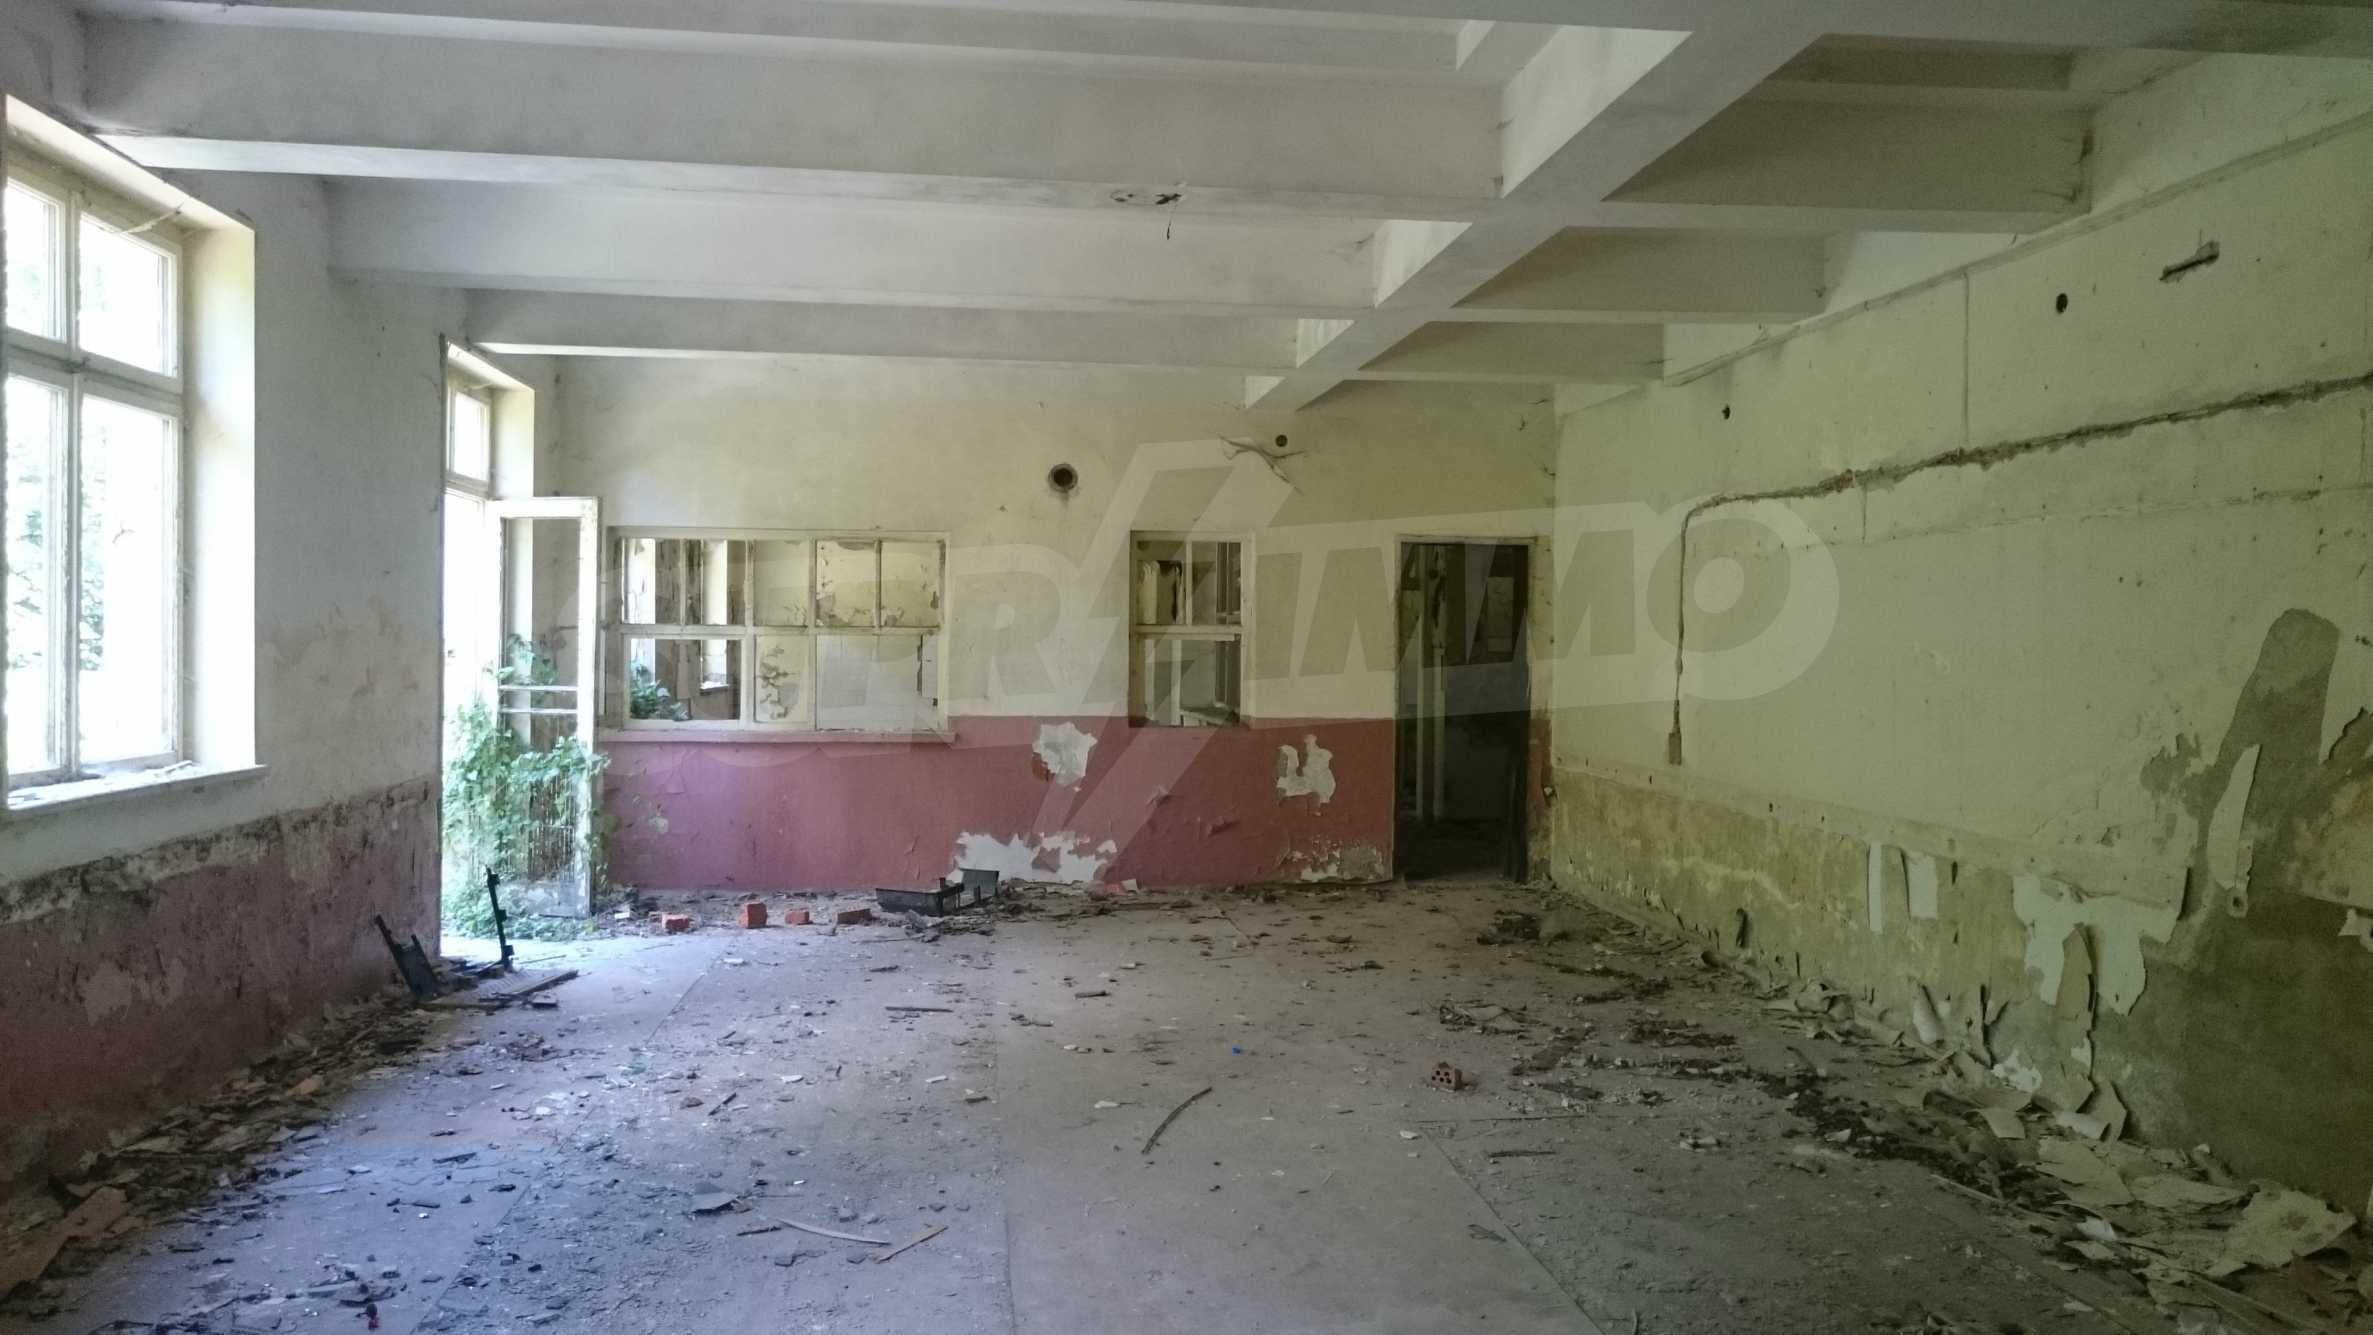 Hotel in need of complete renovation 21